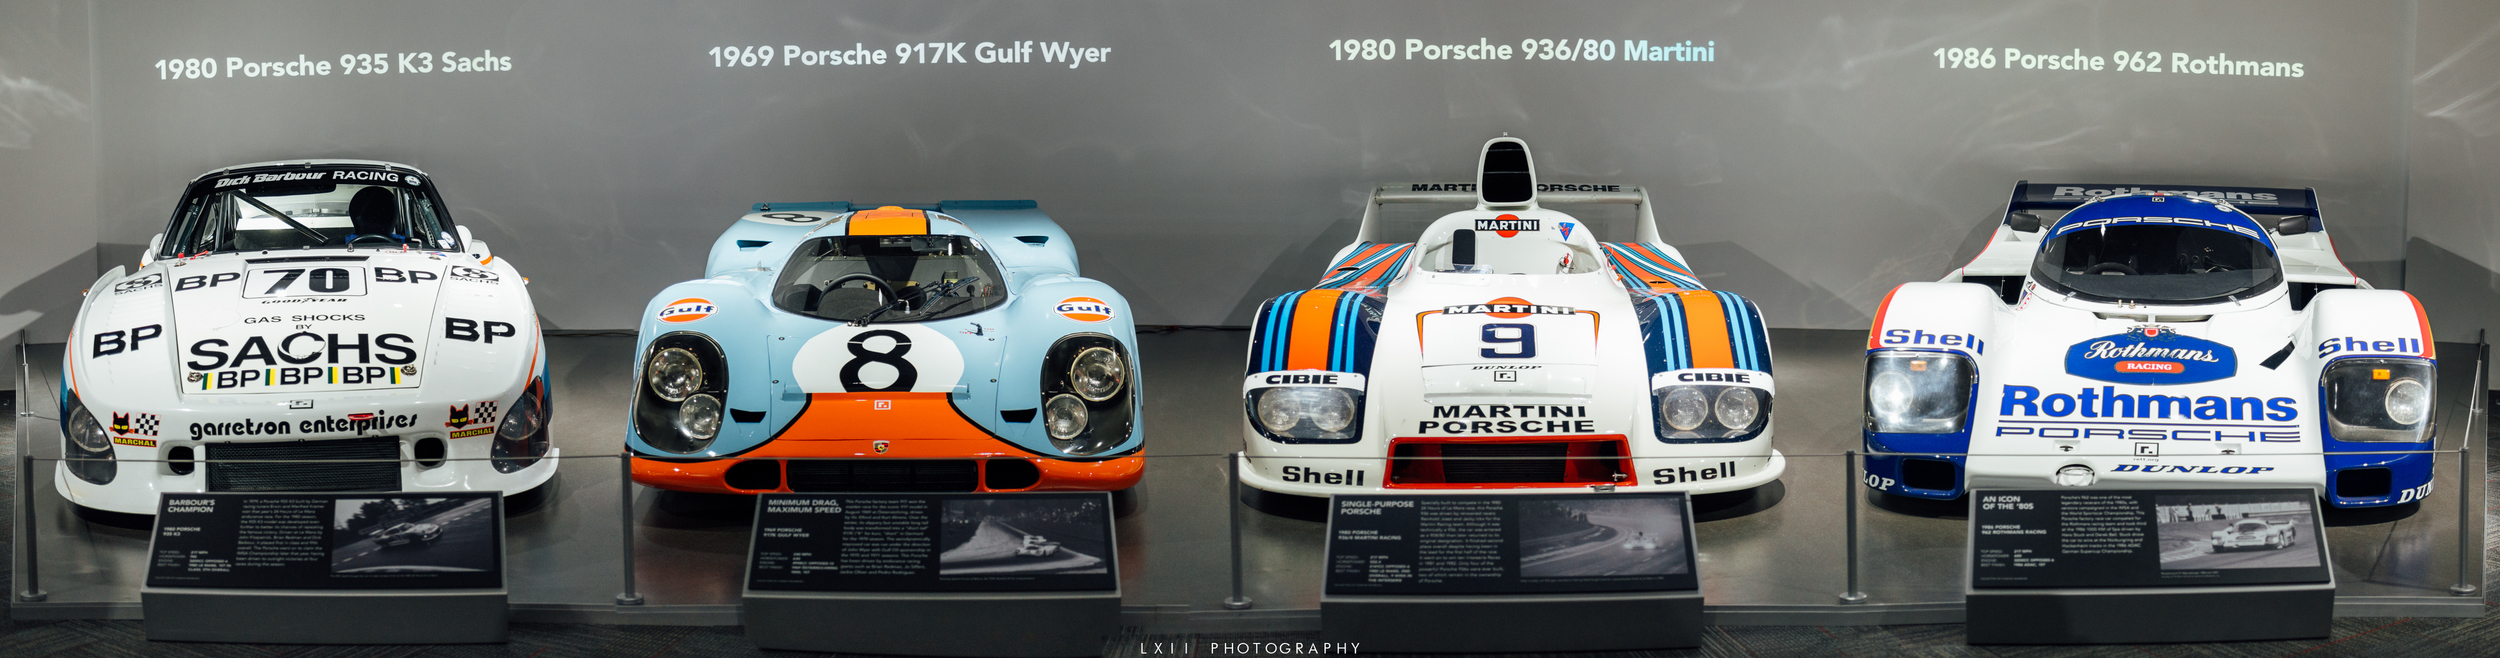 PetersenAutomotiveMuseum-15.jpg